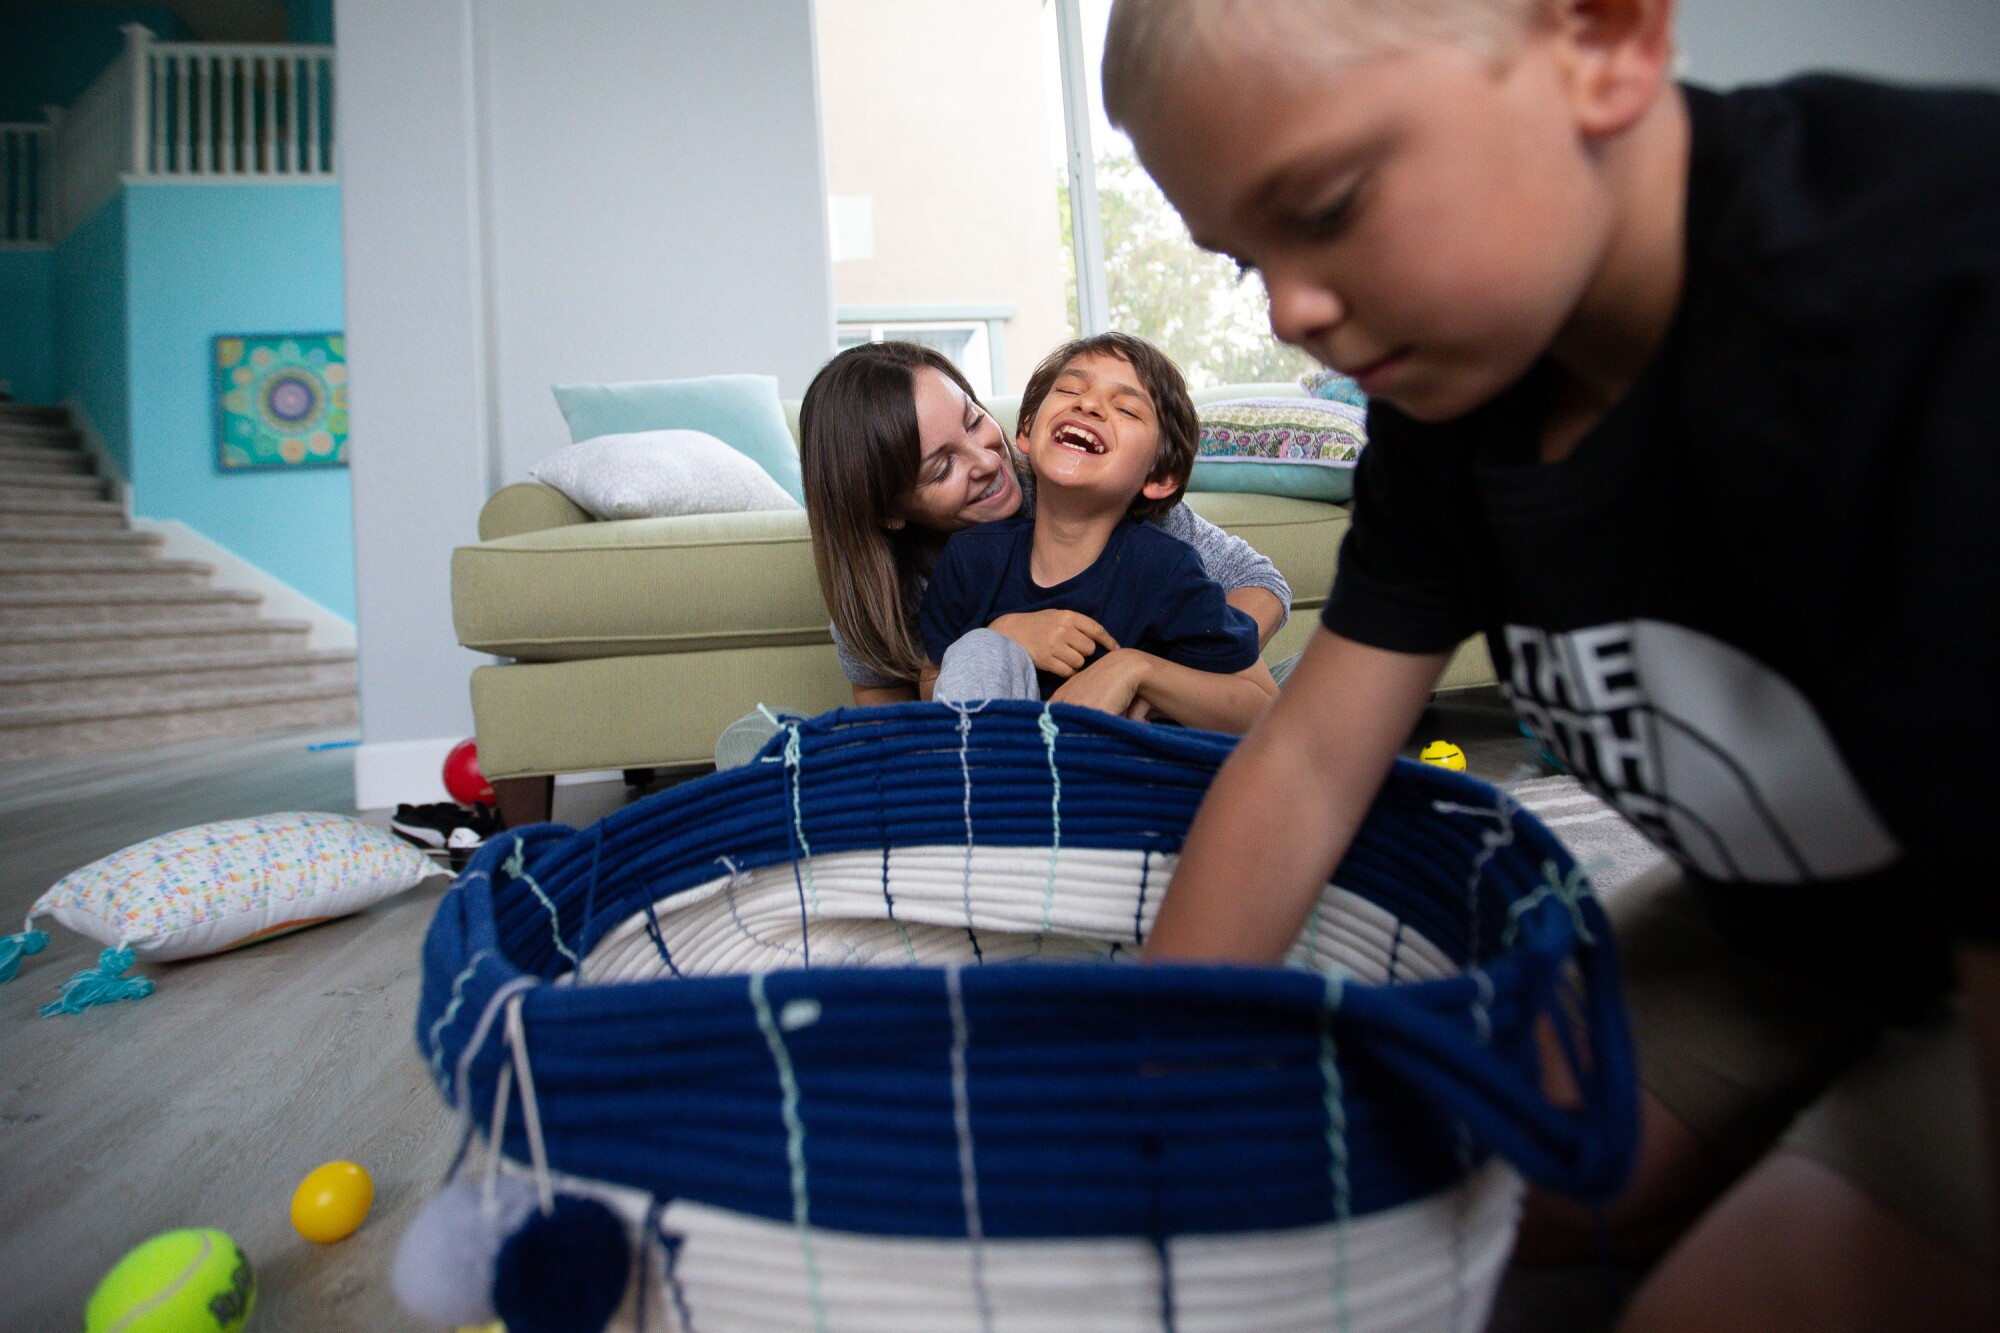 Kelley Dalby plays games with her sons Connor and Cameron in their home.